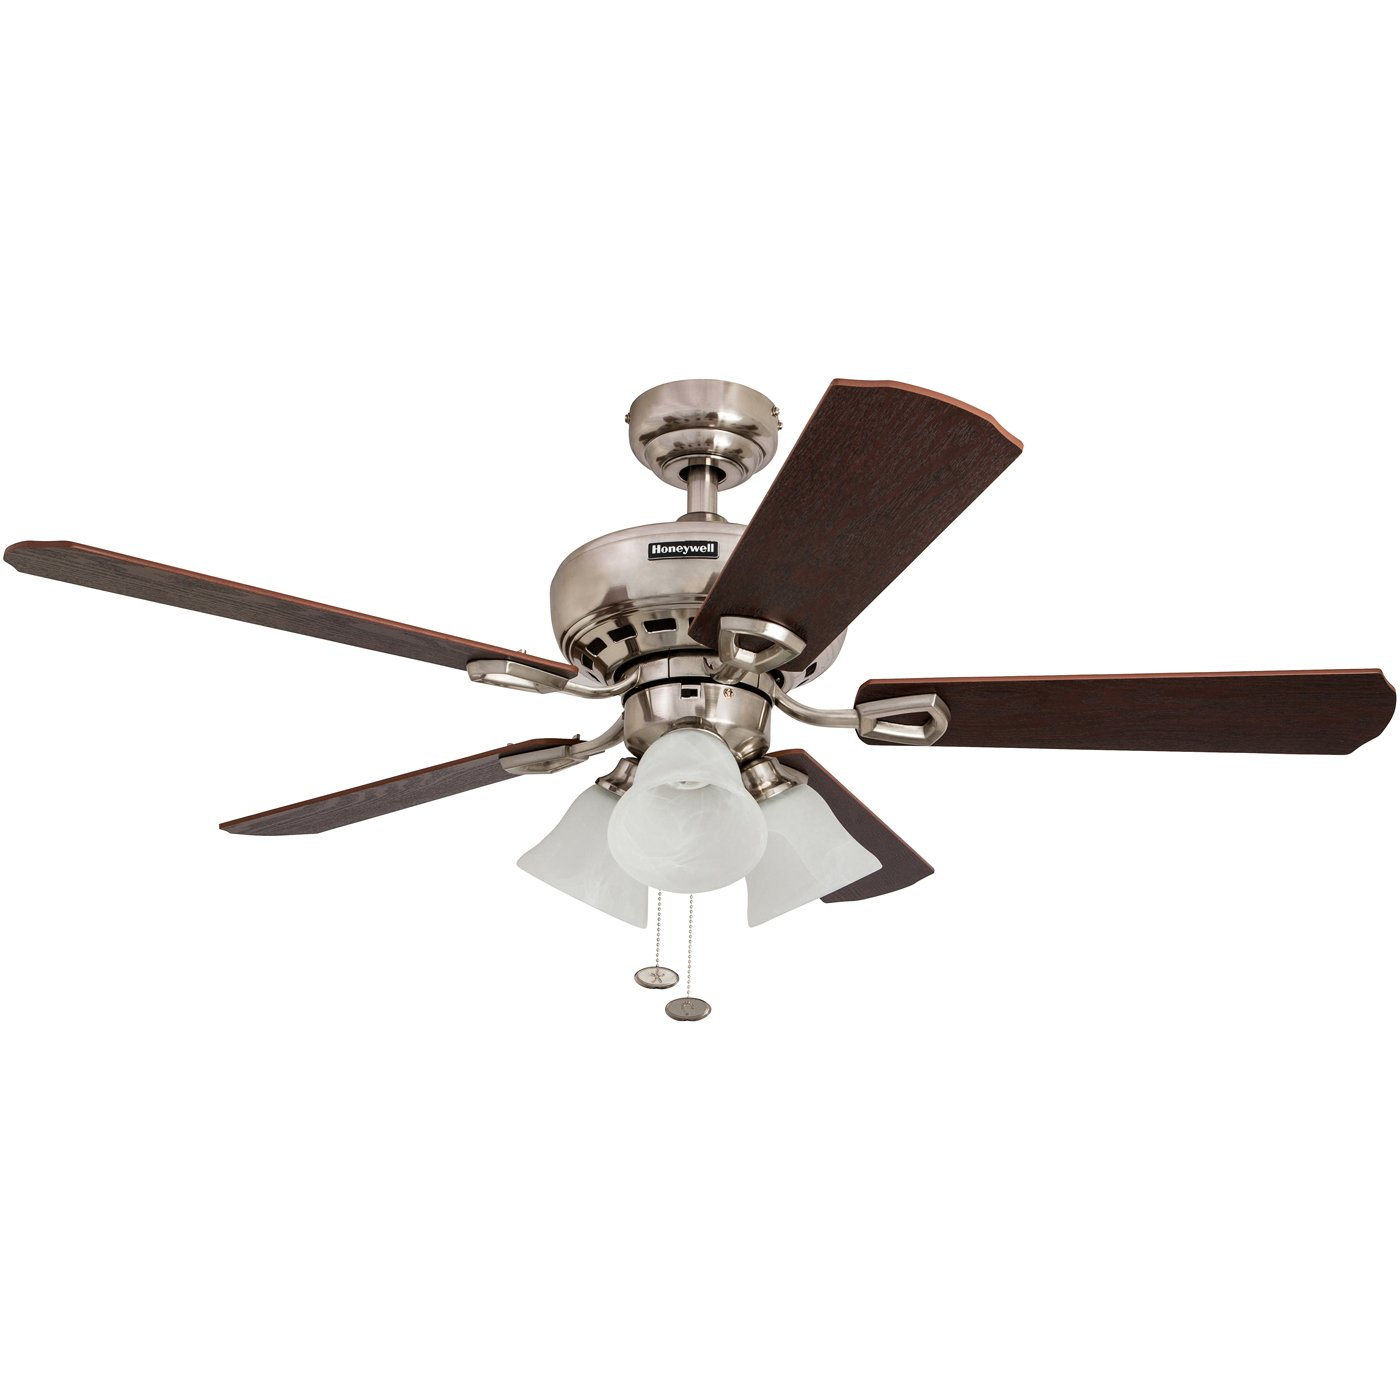 Honeywell Ceiling Fans Honeywell Springhill 50184 Sloped Ceiling Fan Brushed Nickel